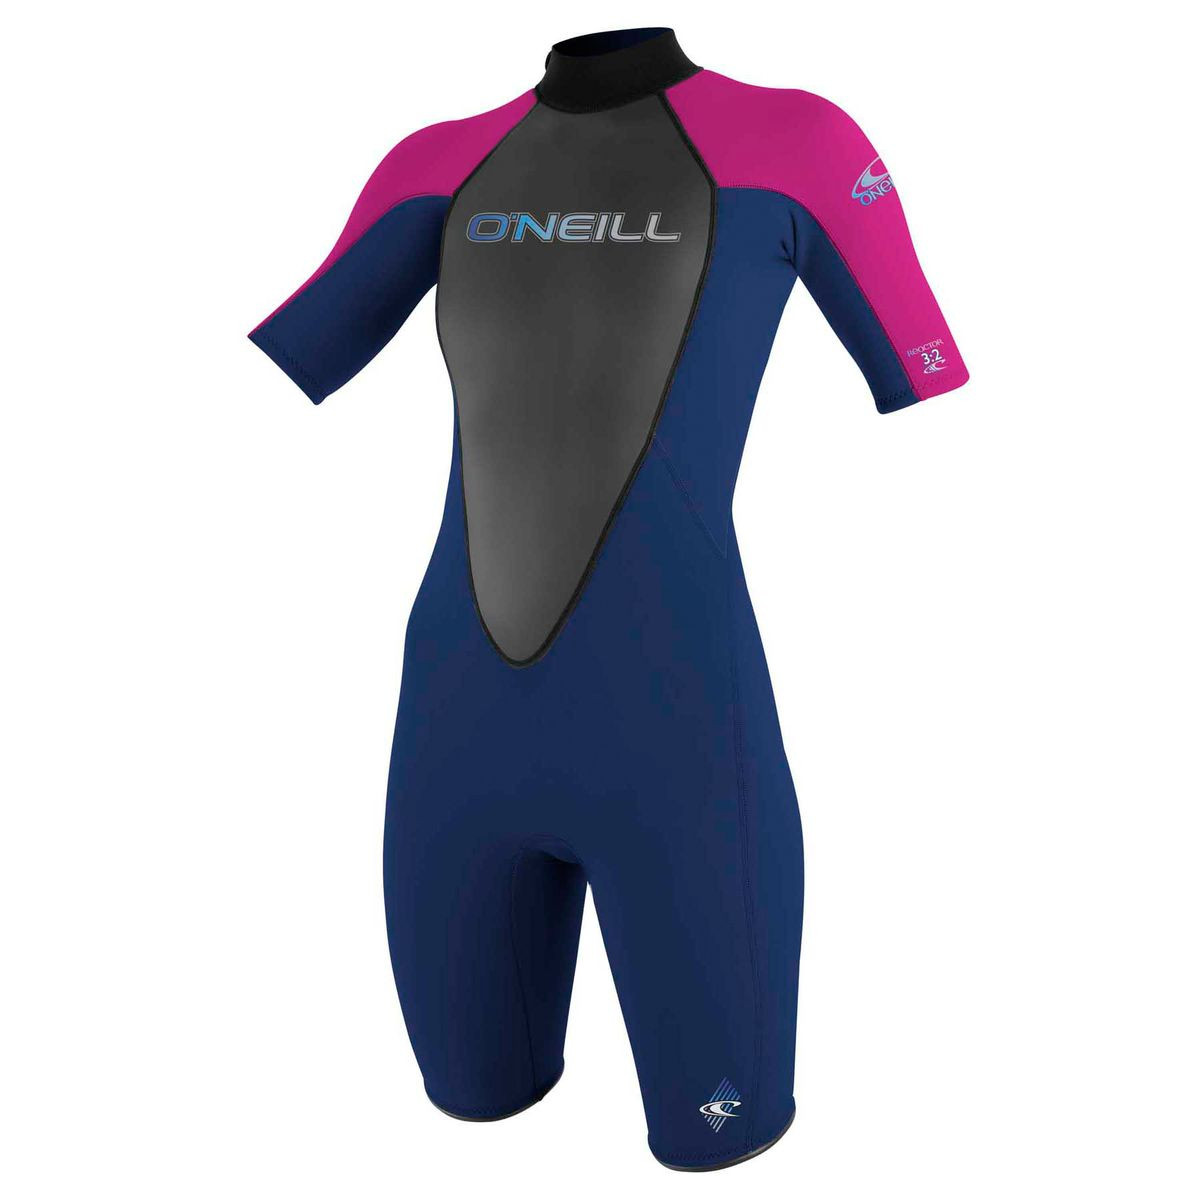 O Neill Womens Reactor 2mm Shorty Wetsuit - Navy  Punk Pink  Navy 2bf4a1a6a